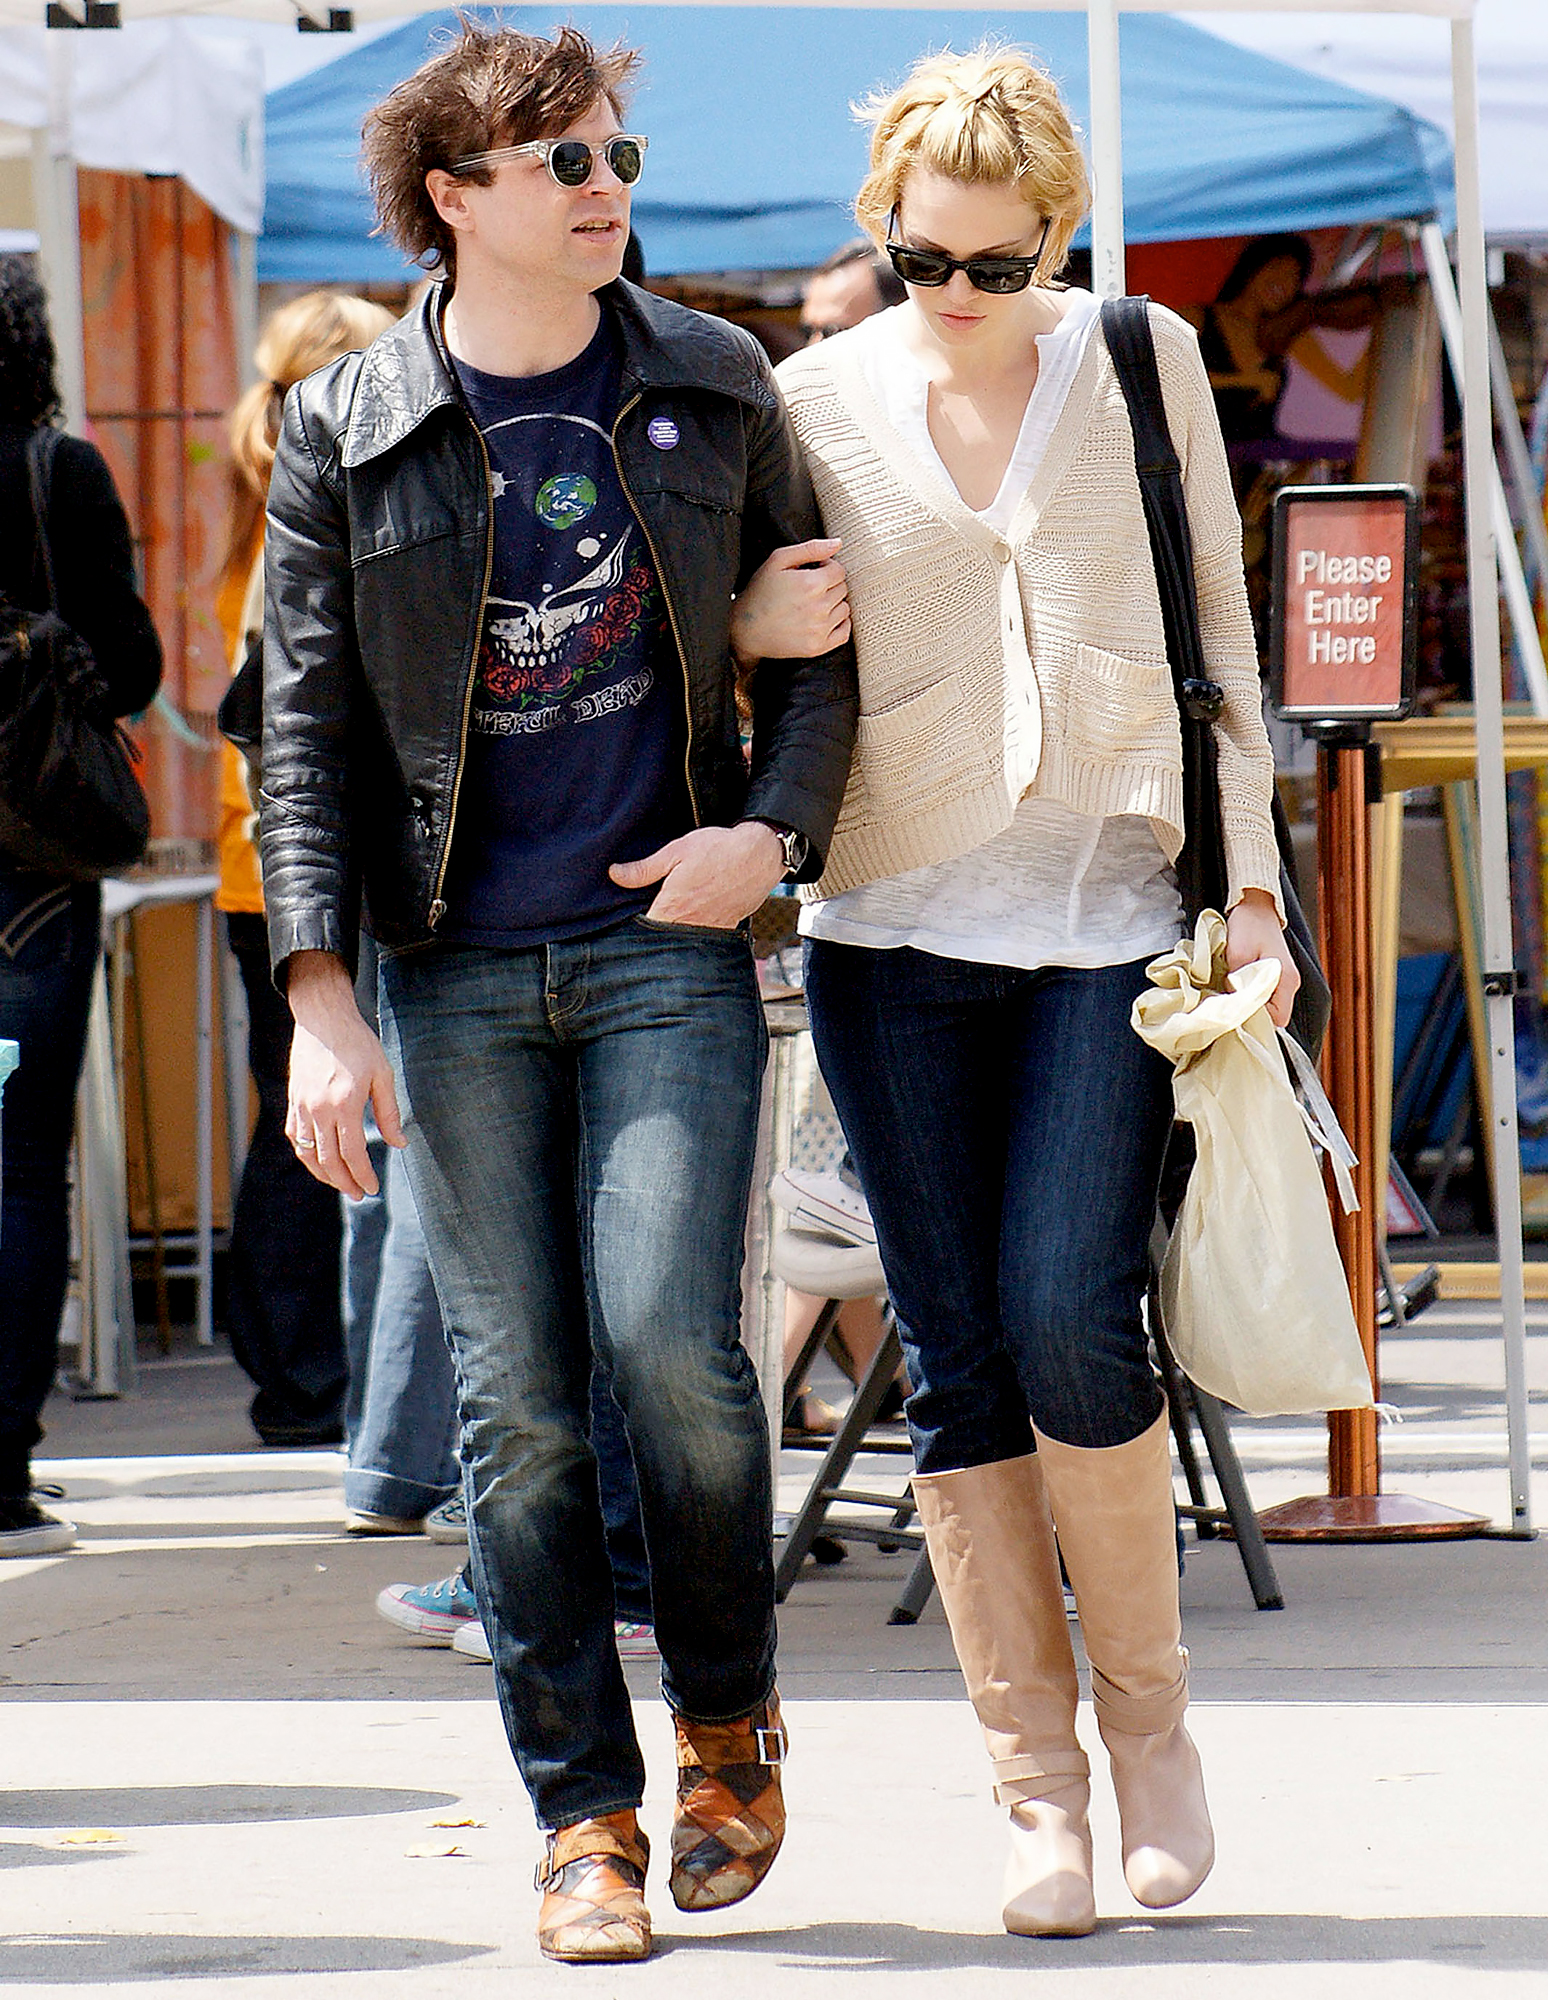 ryan-adams-mandy-moore-abuse-claims - Ryan Adams and Mandy Moore sighting at the flea market on March 29, 2009 in West Hollywood, California.